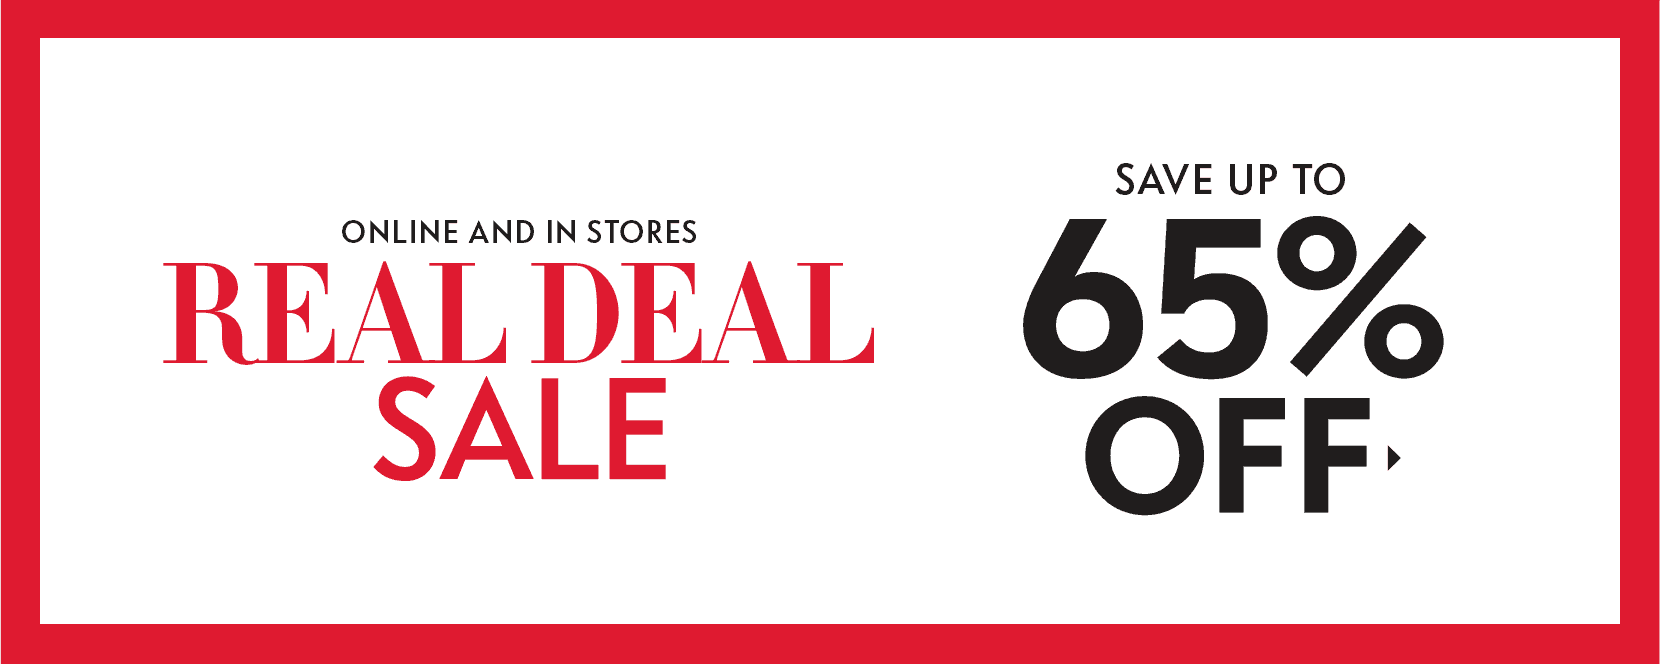 Save up to 65% off real deal sale + free express global shipping with $175 USD purchase at Neiman Marcus.